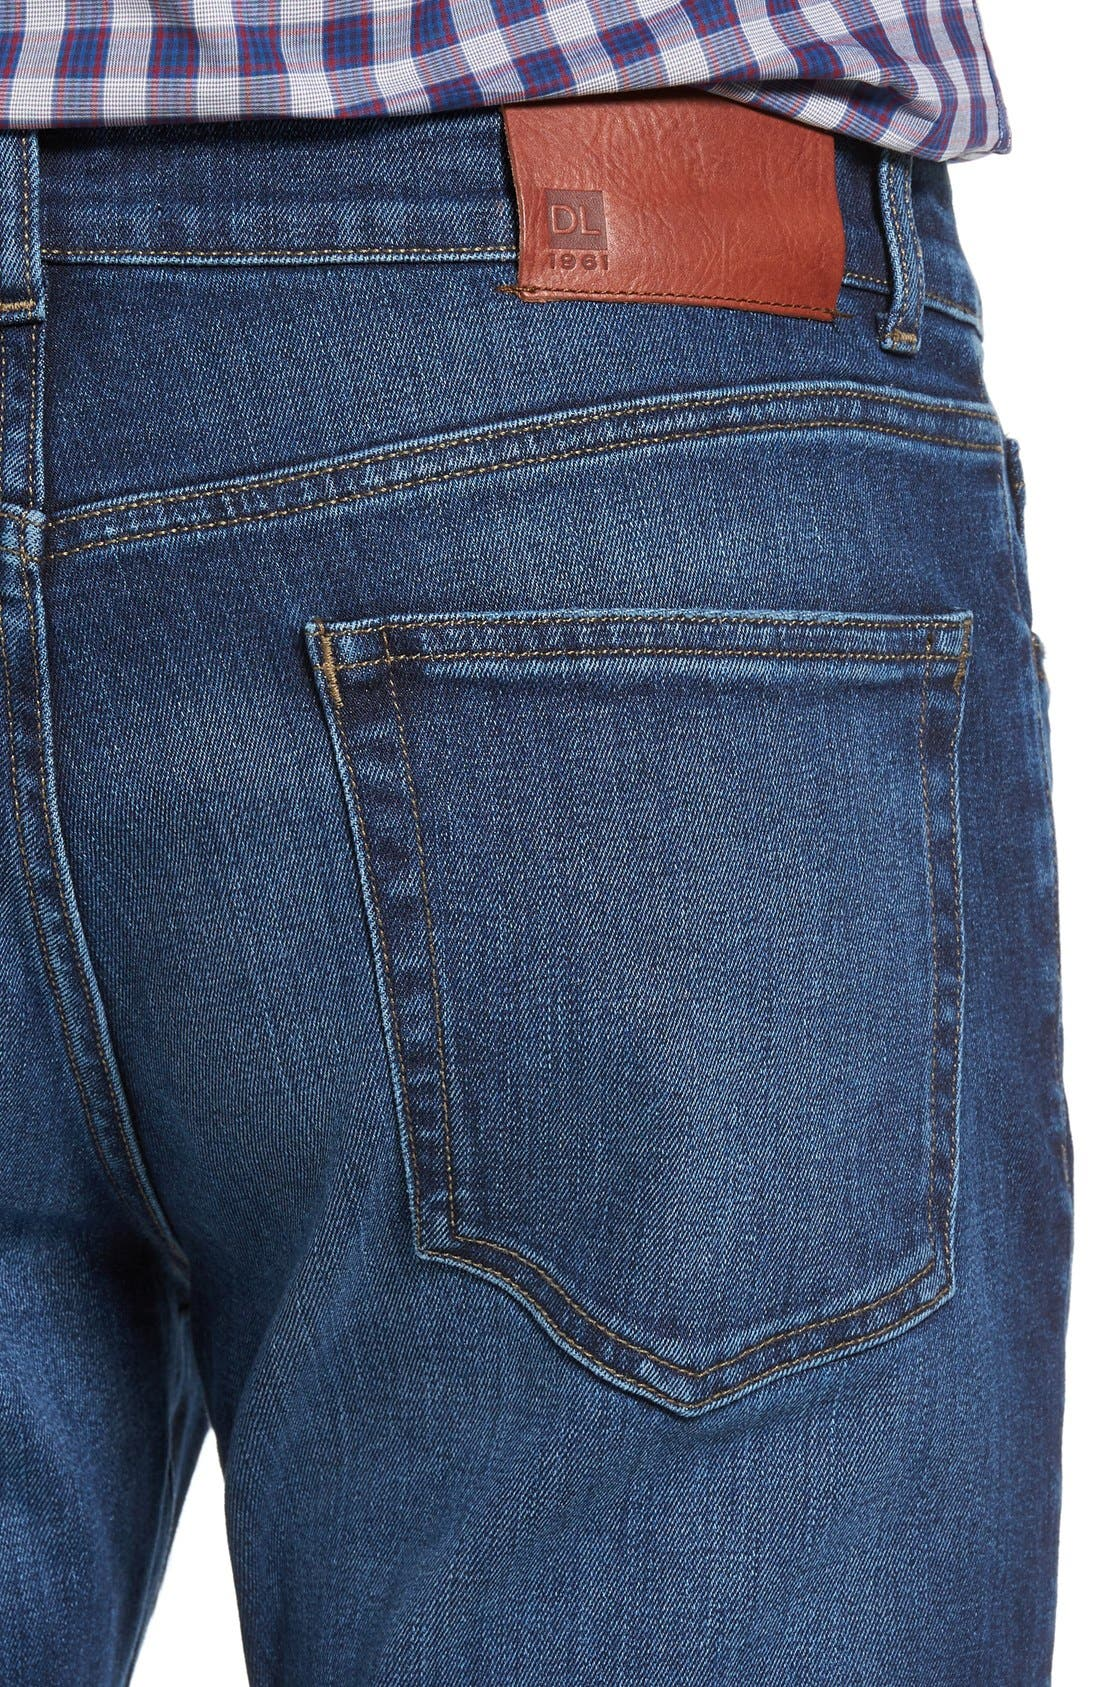 Russel Slim Straight Fit Jeans,                             Alternate thumbnail 2, color,                             405